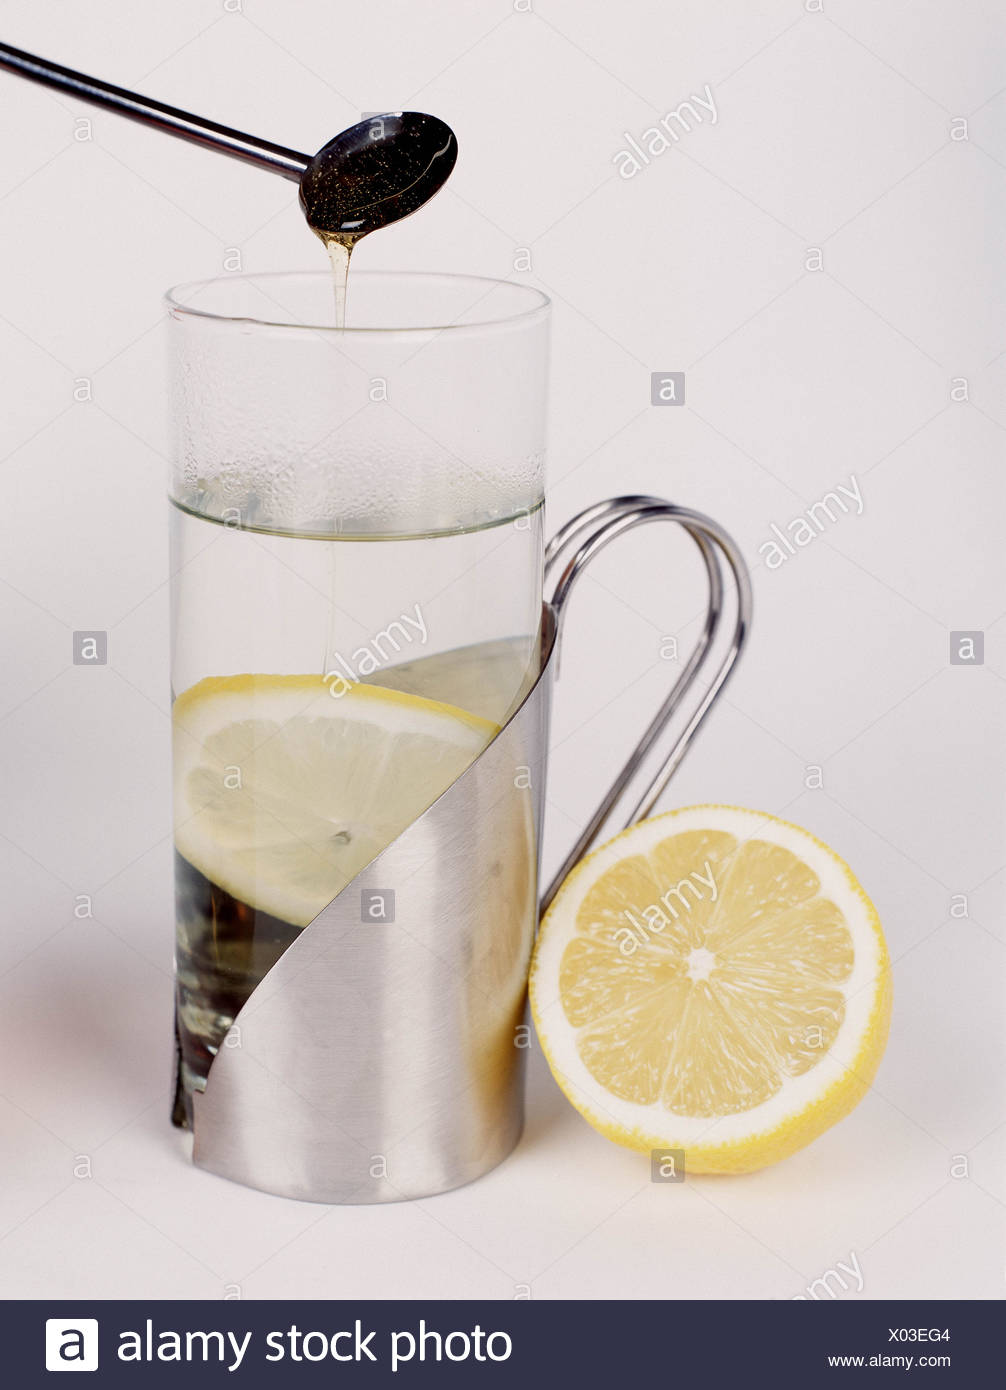 Silver mug with steamed glass containing hot water and a lemon slice silver spoon containing honey held over glass Stock Photo